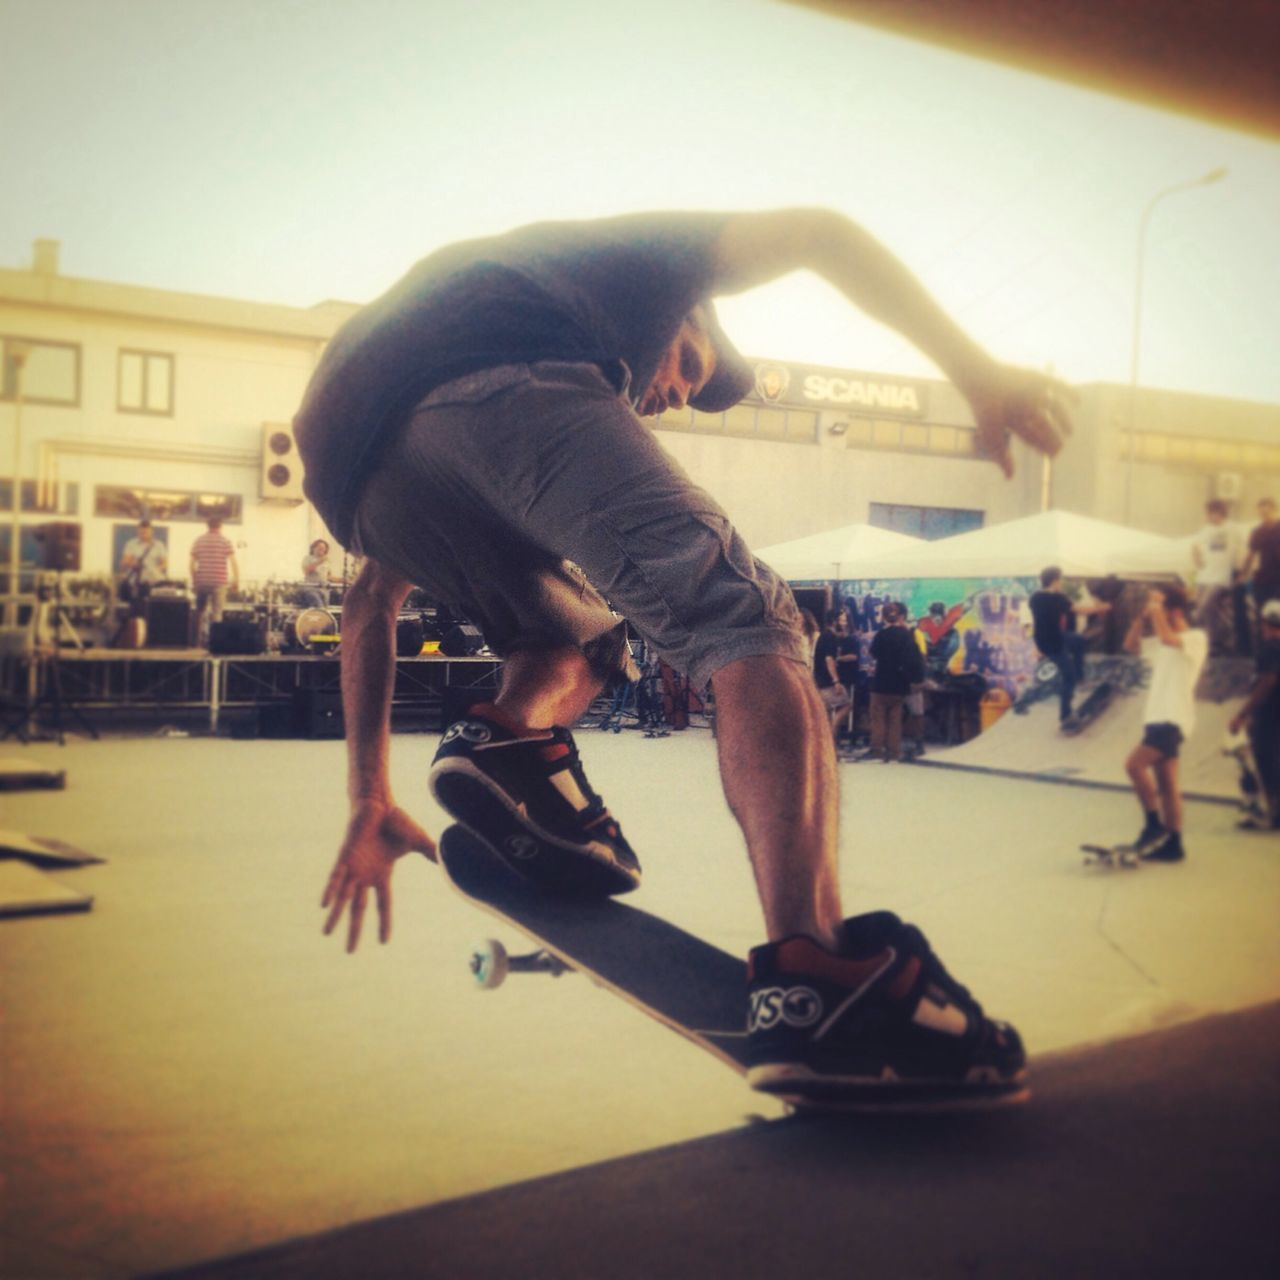 skill, lifestyles, sport, balance, skateboard, strength, real people, leisure activity, full length, playing, outdoors, men, one person, breakdancing, day, city, people